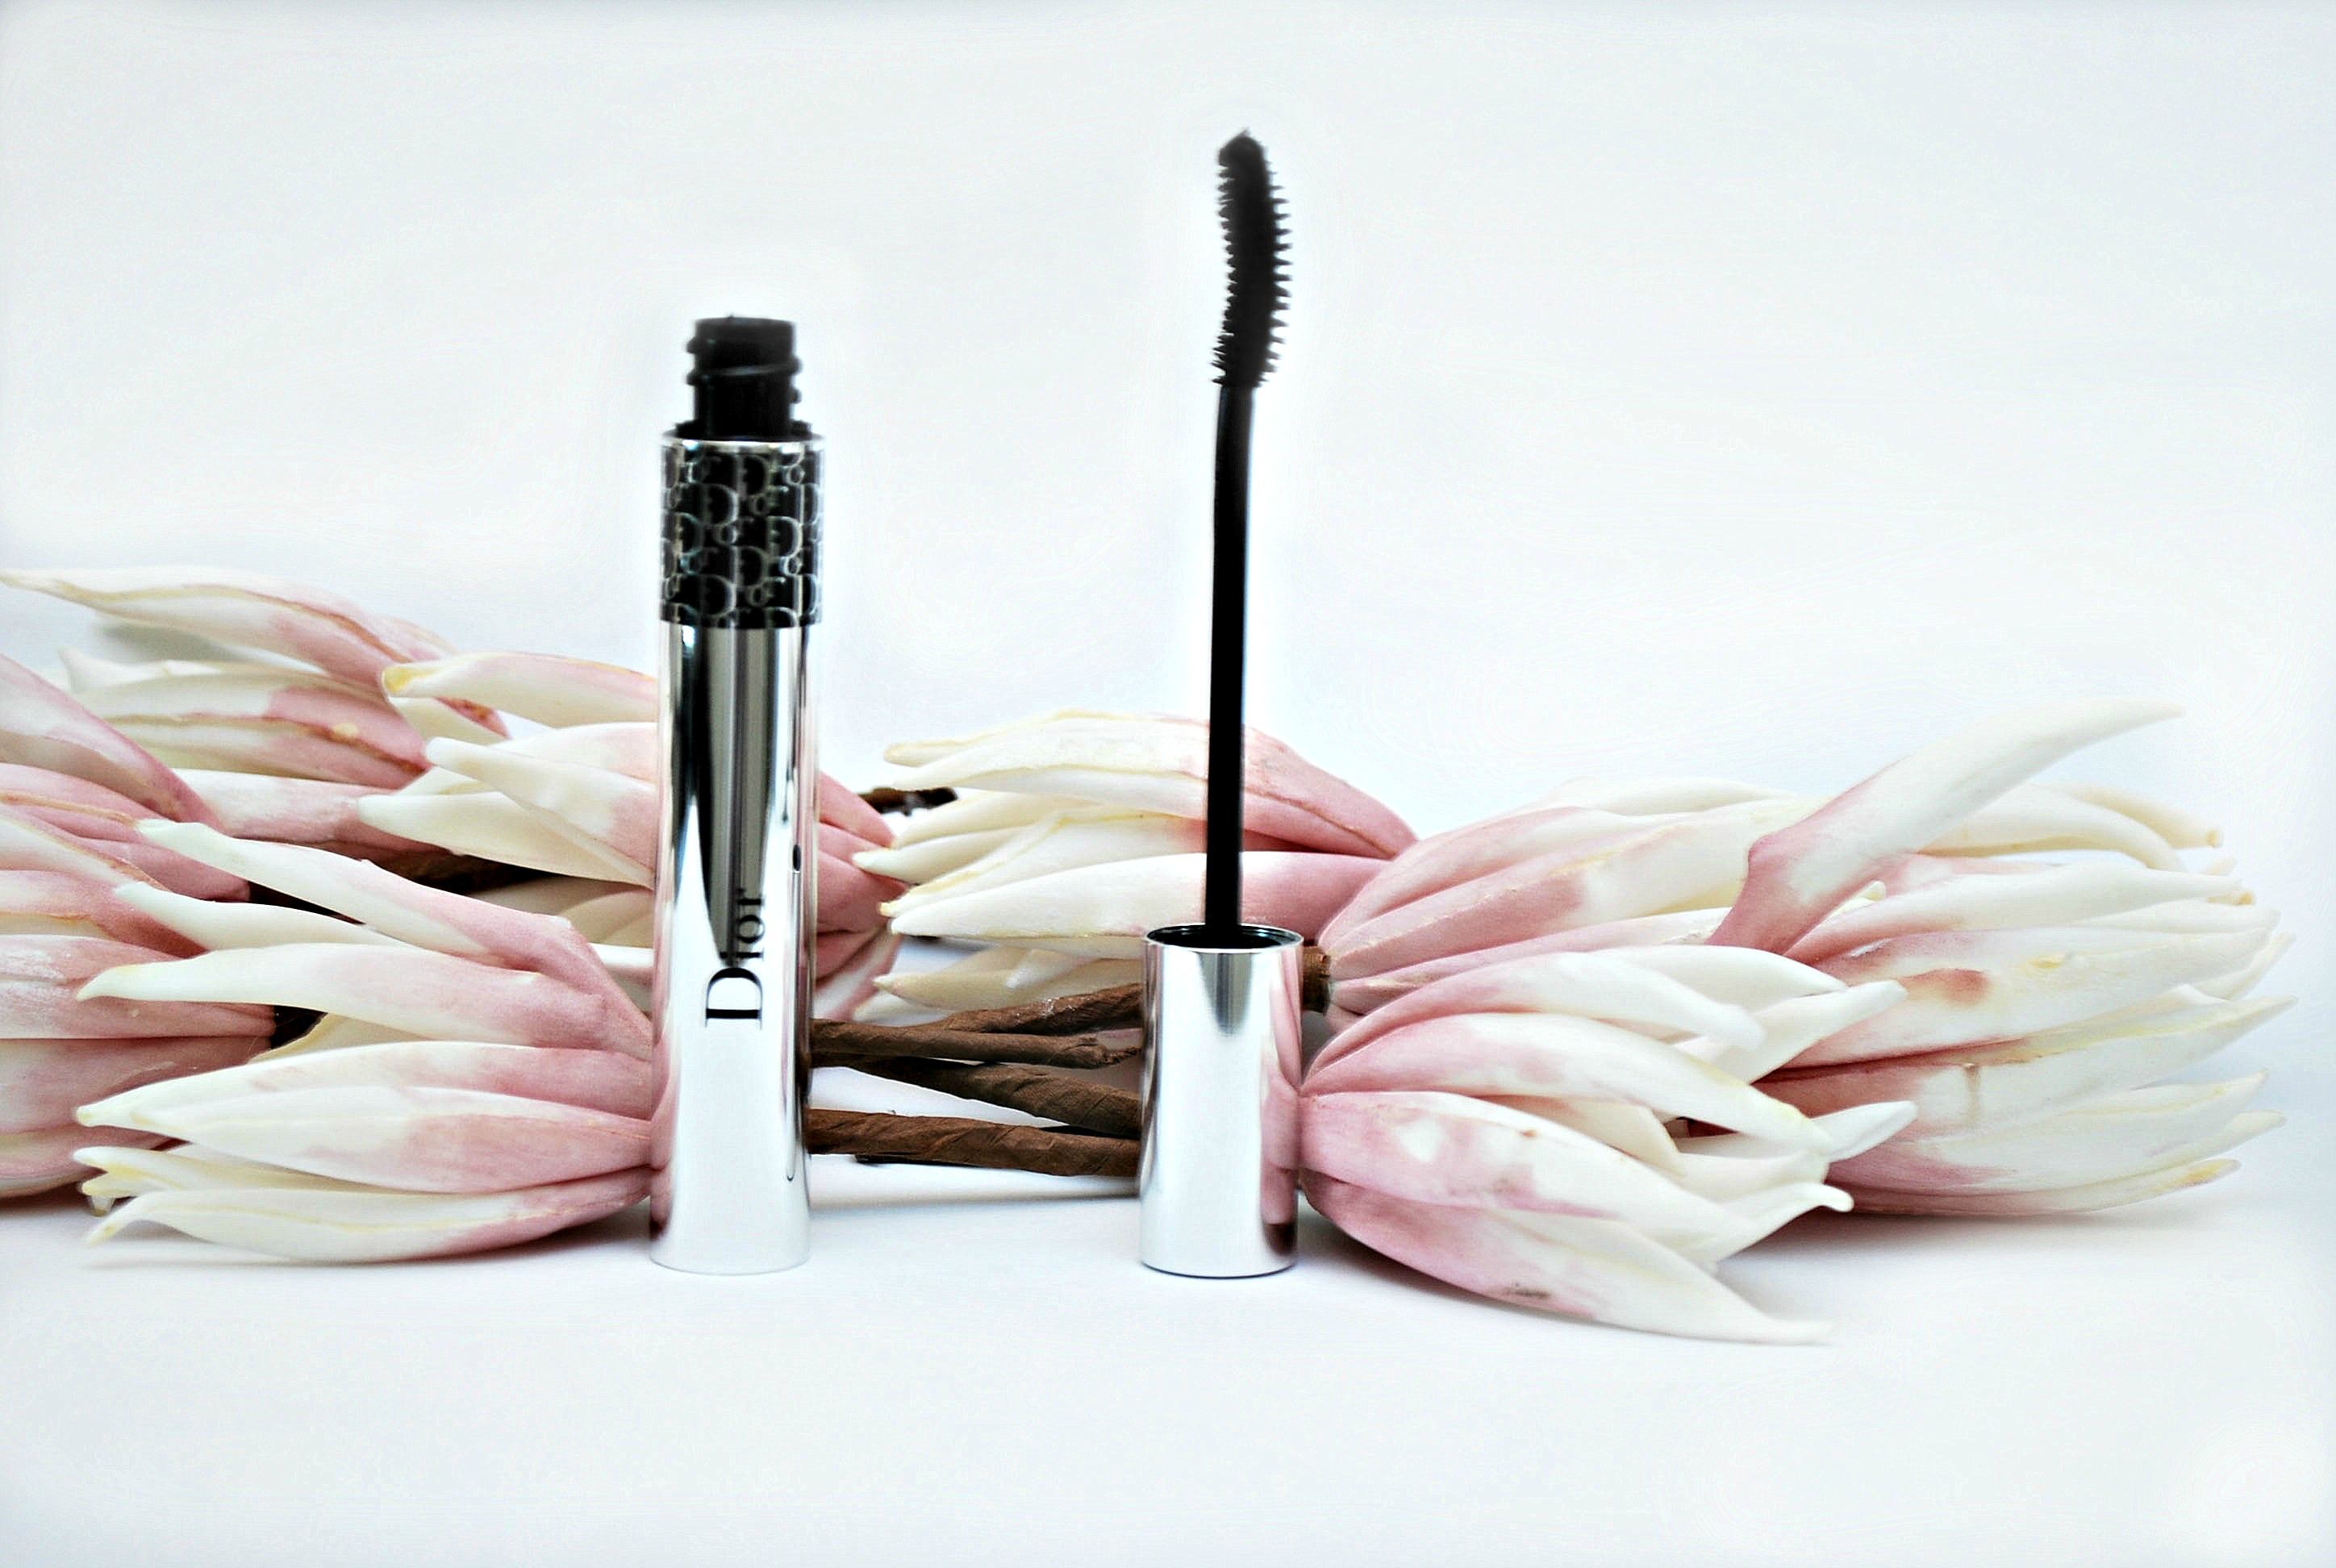 diorshow iconic overcurl mascara review